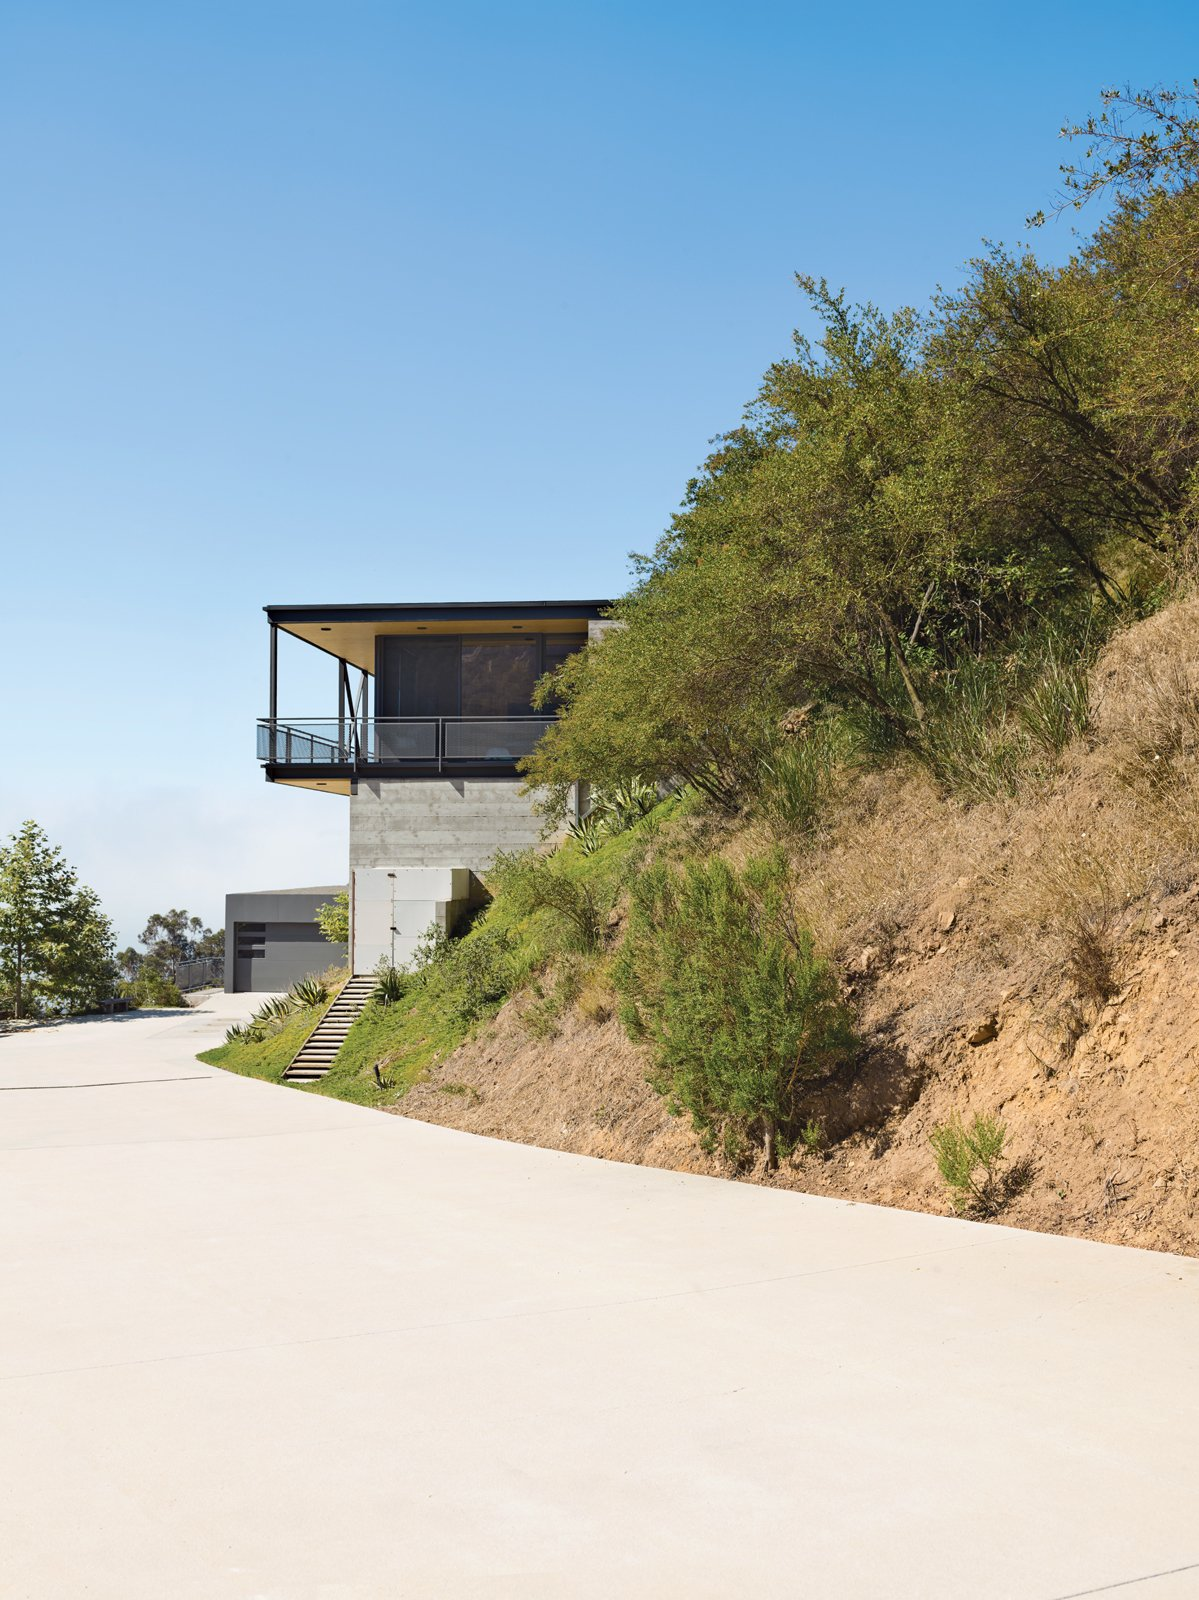 Exterior, House Building Type, Concrete Siding Material, and Flat RoofLine To deal with a Malibu site's sharp incline, architect Bruce Bolander set the steel, concrete, and glass house on caissons. A deep wraparound porch nearly doubles the home's living space and offers the ideal perch for outdoor dining and taking in spectacular views of the surrounding canyon. The garage serves as resident Dave Keffer's home office.  Photo 2 of 9 in This High-Flying Home Tackles a Sharp Slope